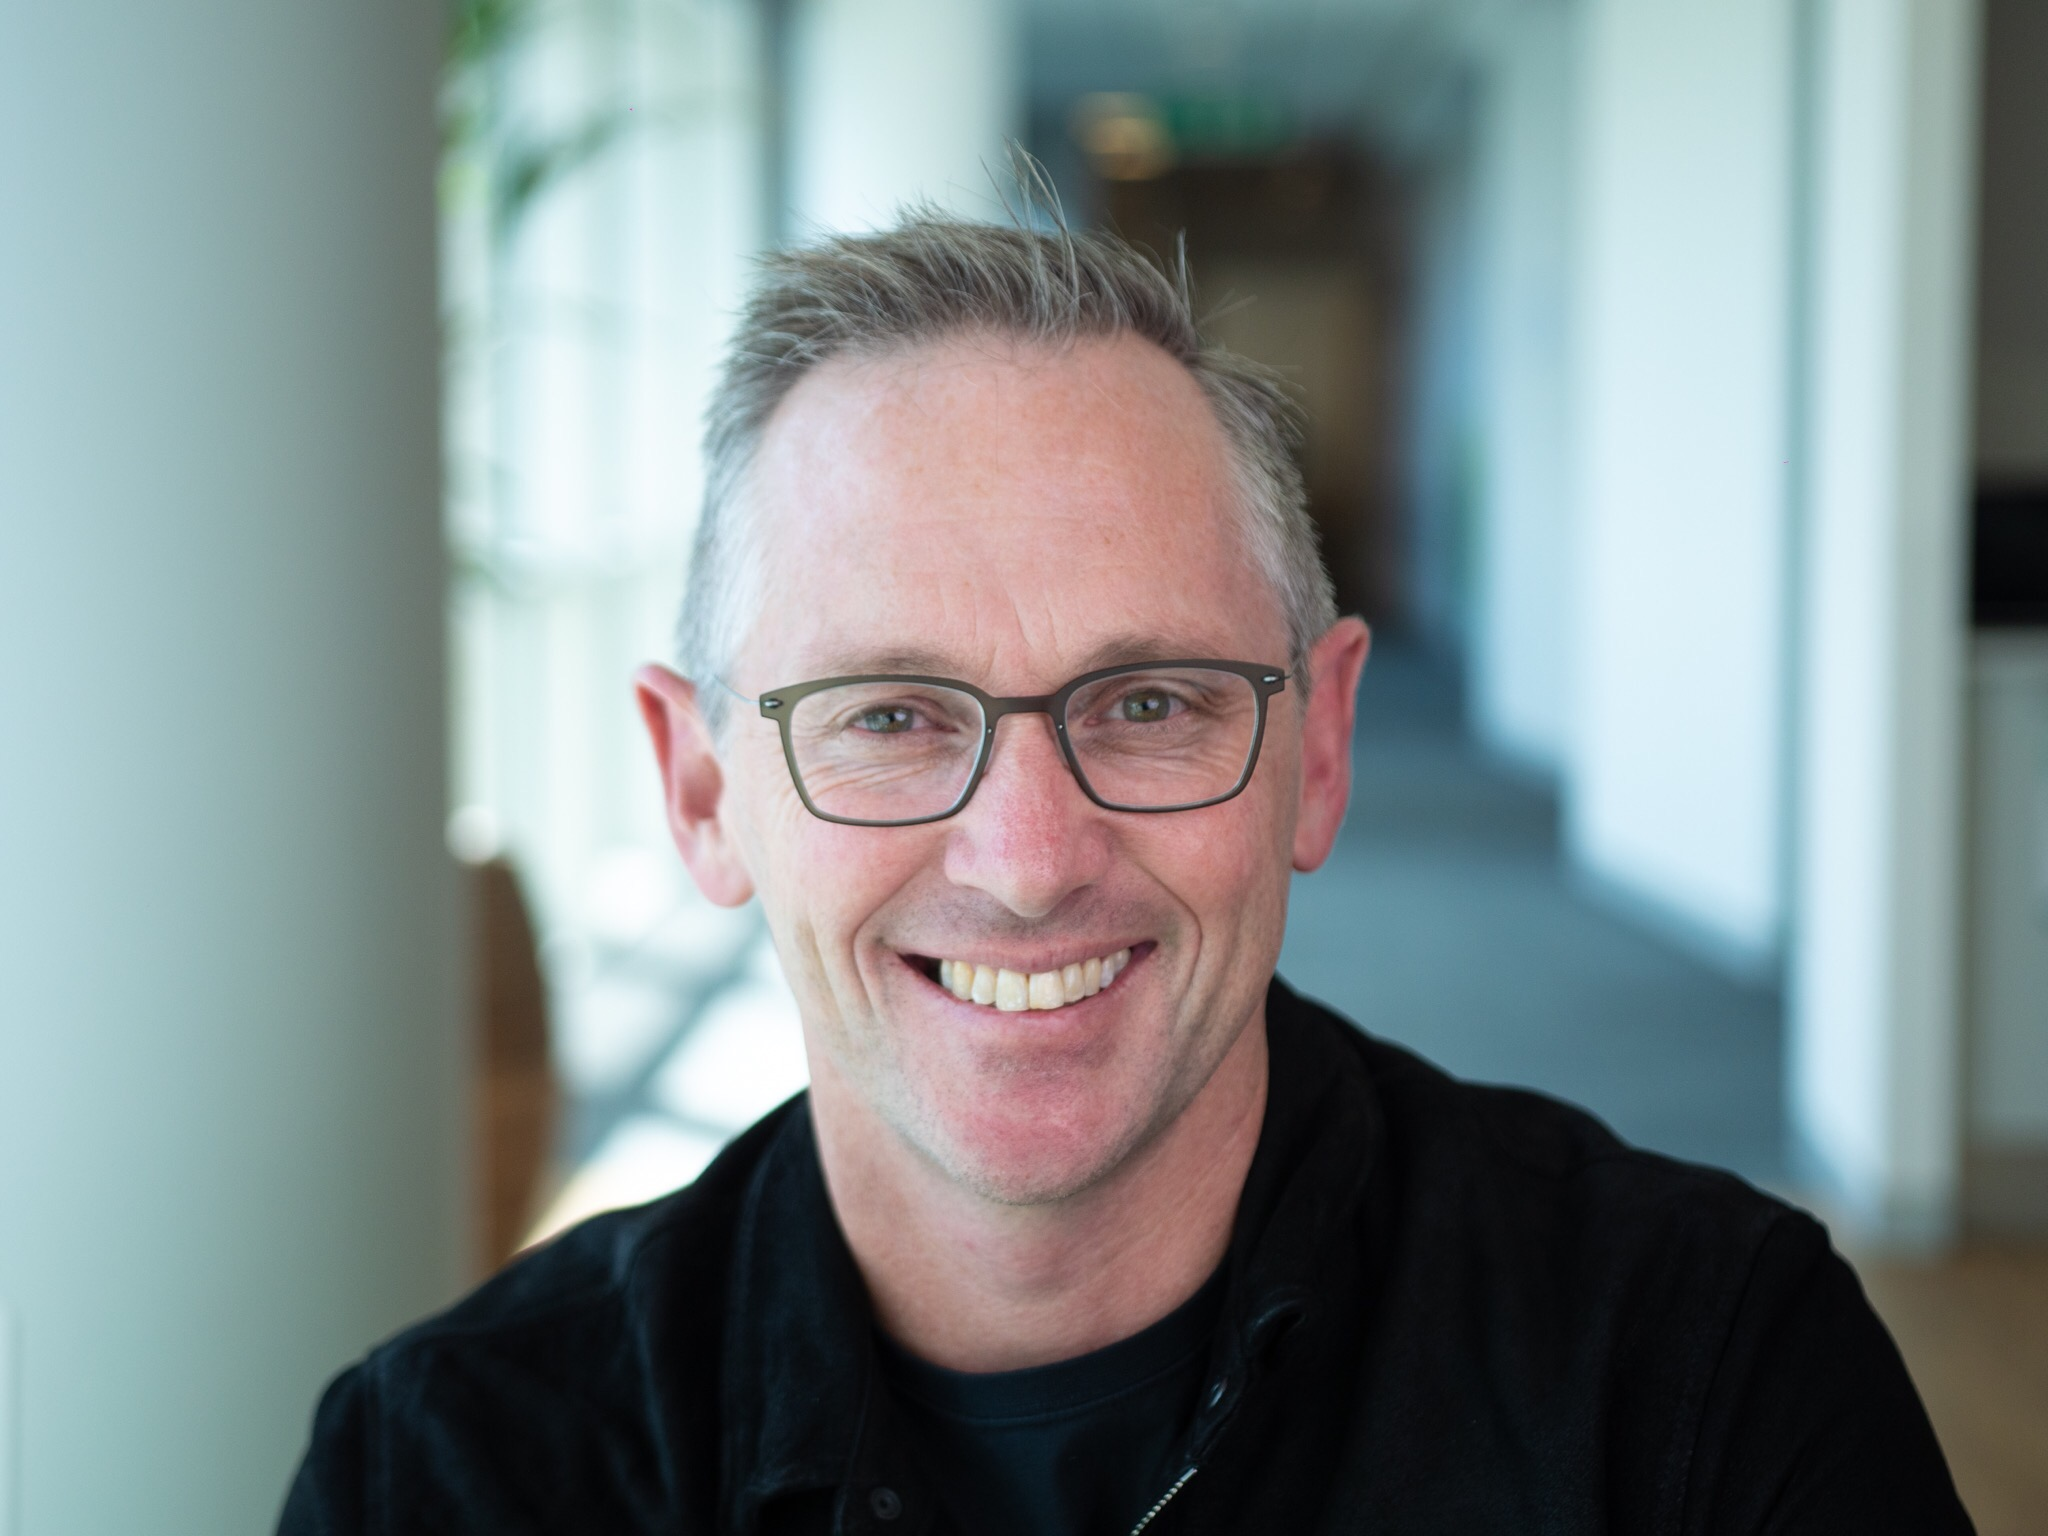 Hugh Williams - Hugh is Rampersand's first venture partner. He is a university professor, company advisor, and founder of his own philanthropic education venture. Hugh helps find new companies for our portfolio and mentors our portfolio companies. You can reach him at hugh@rampersand.com